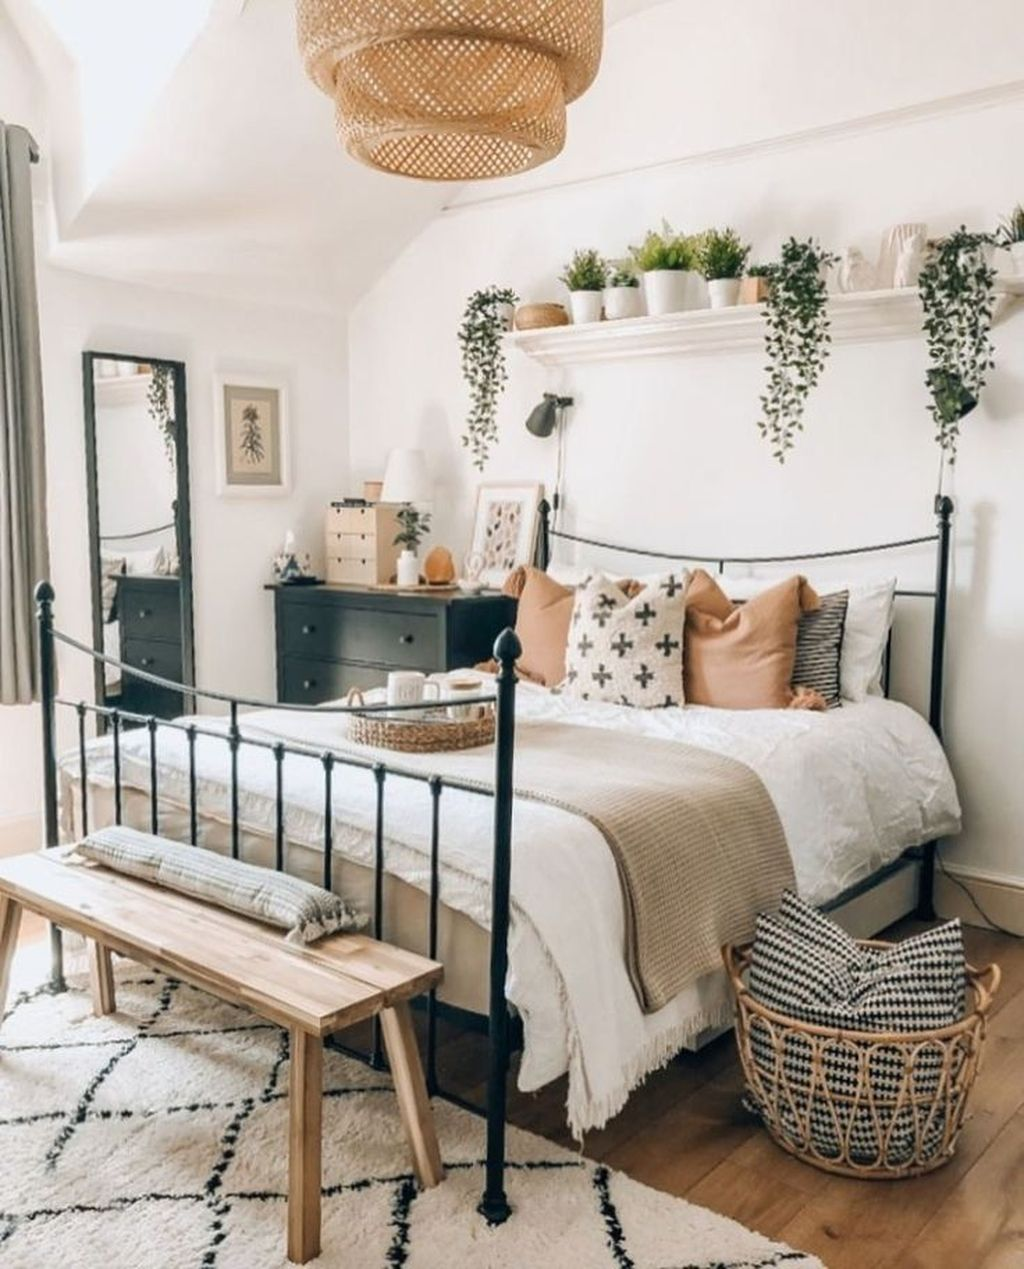 Admirable Small Bedroom Decor Ideas You Never Seen Before 17